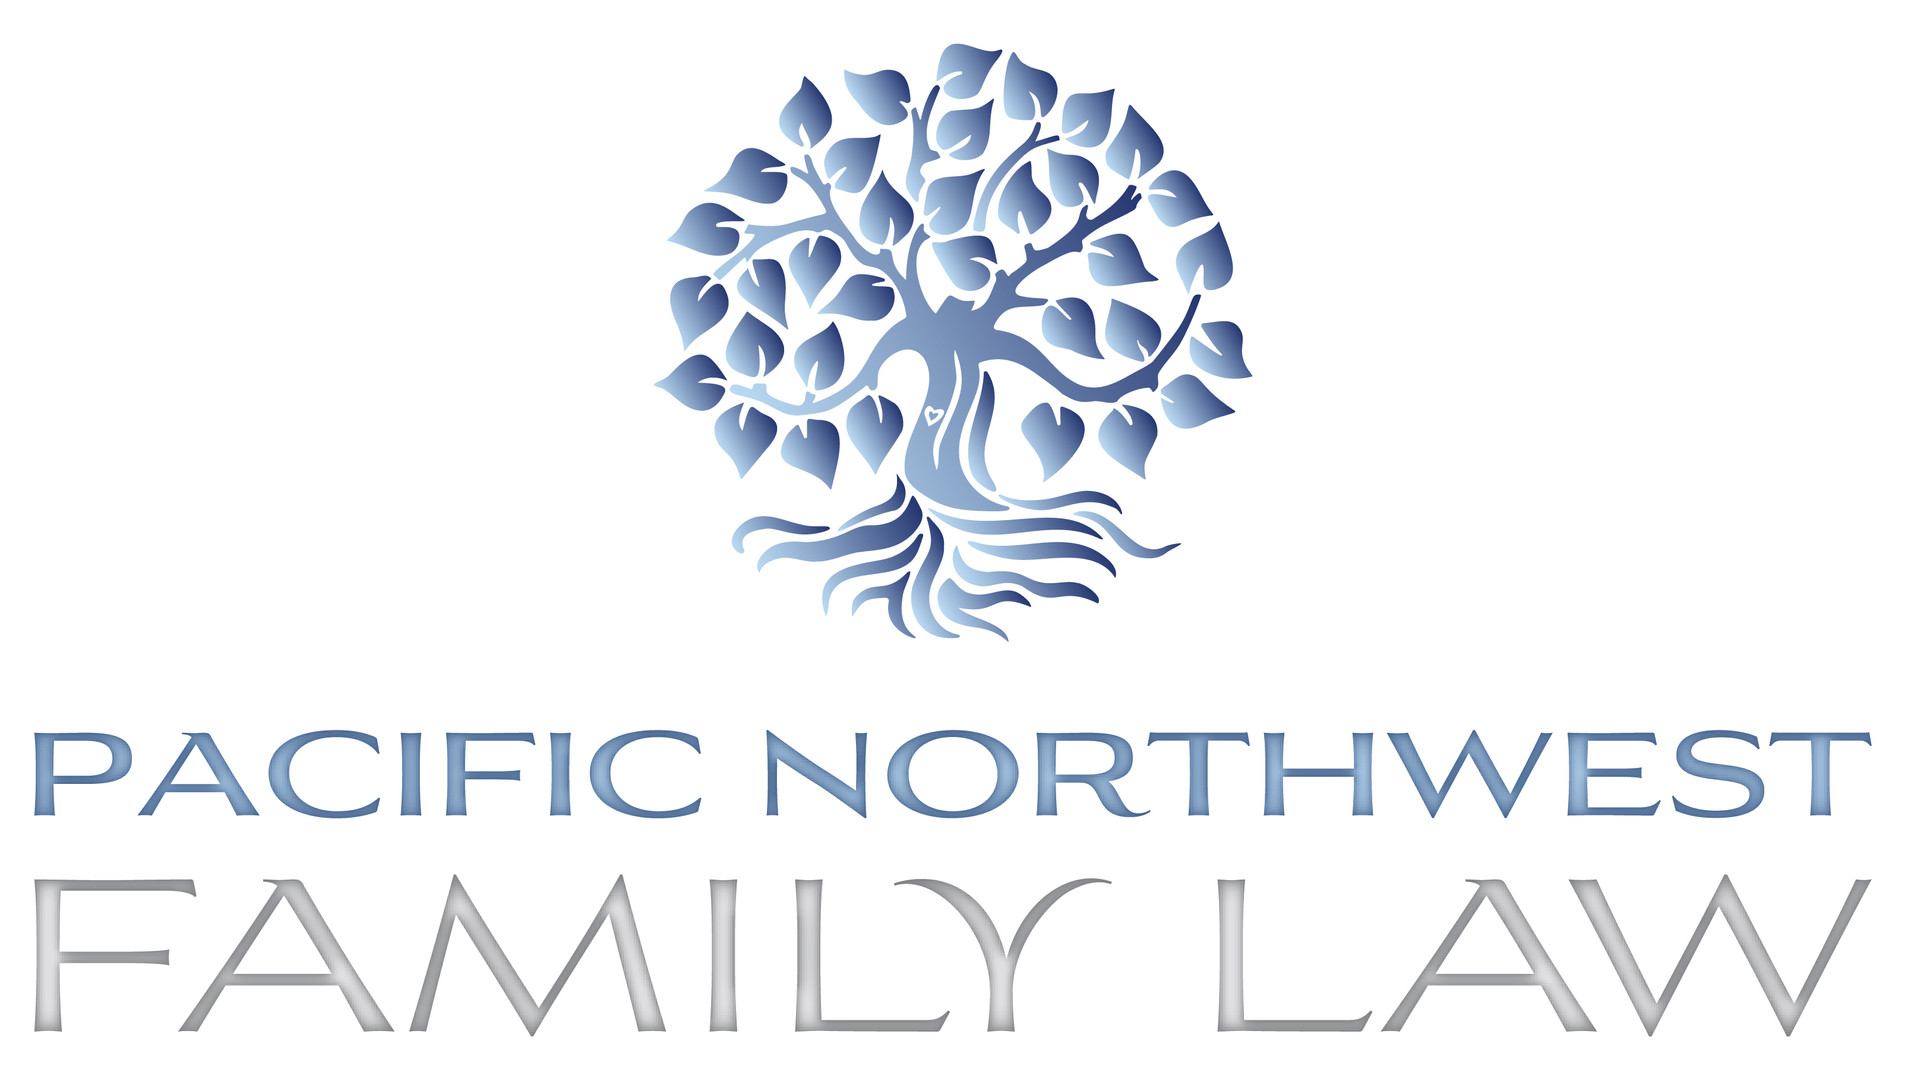 Pacific Northwest Family Law, Richland, WA